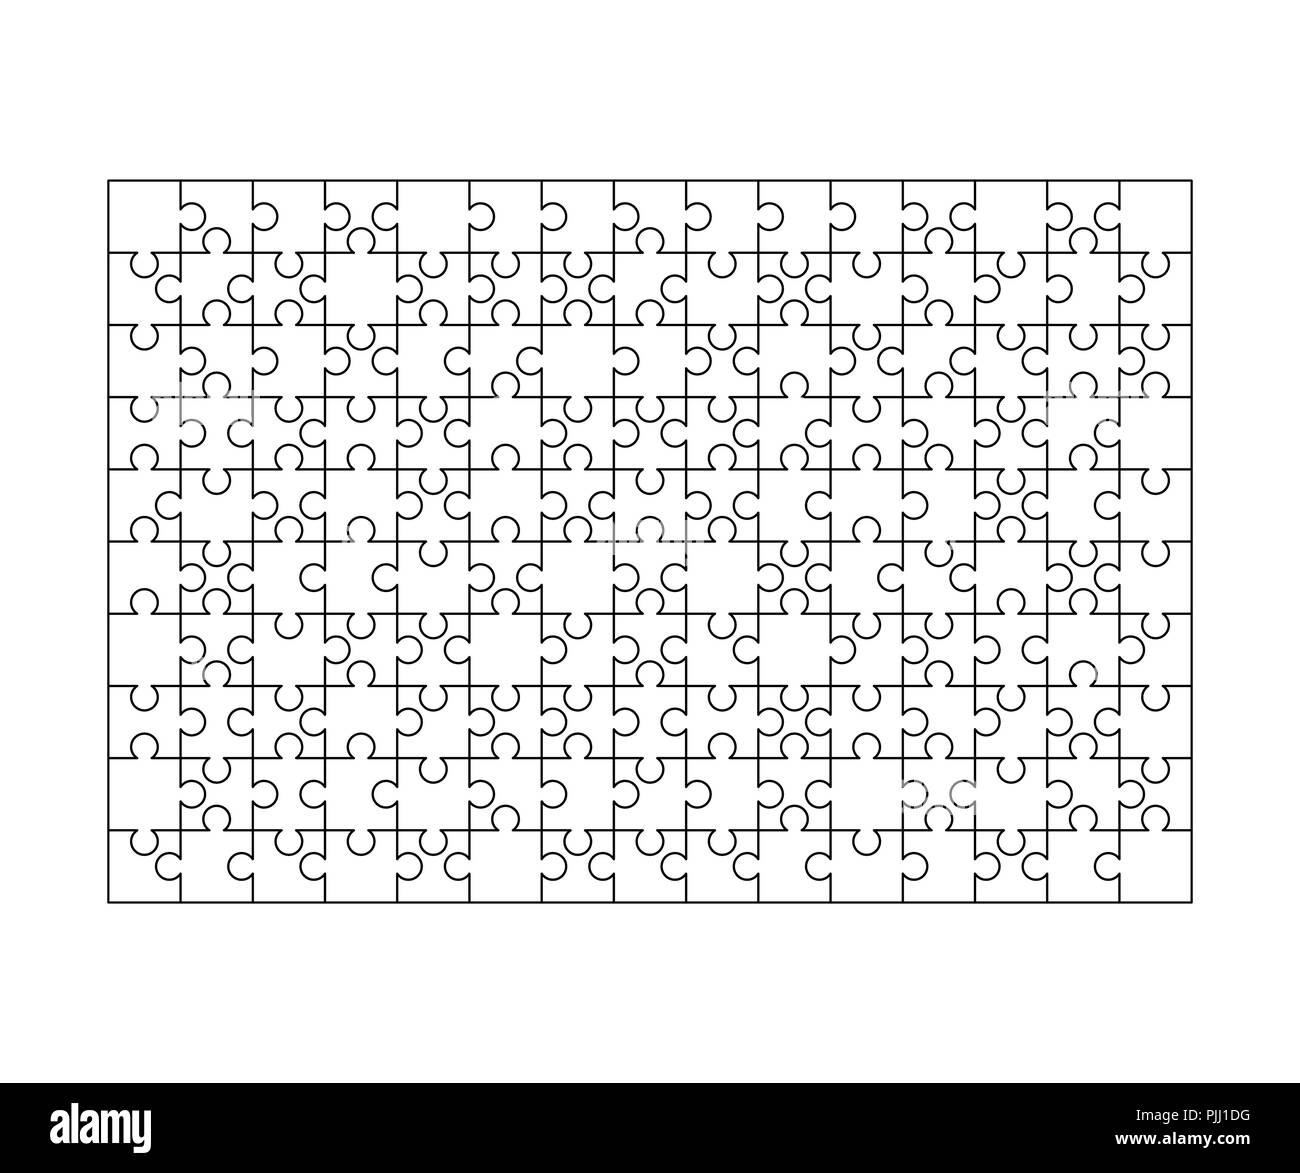 200 White Puzzles Pieces Arranged In A Rectangle Shape Jigsaw